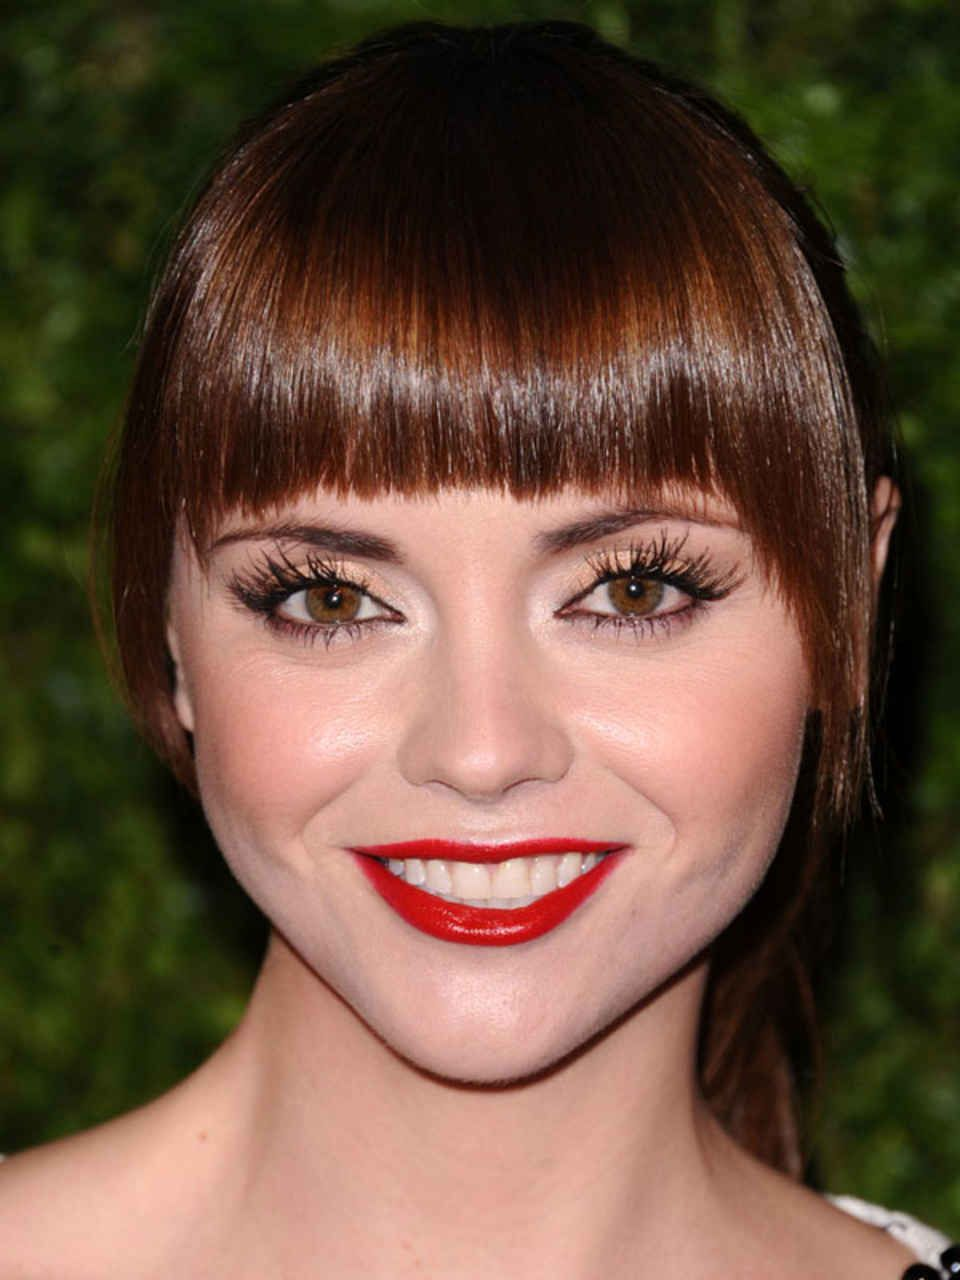 The Best And Worst Bangs For Round Face Shapes Bangs For Round Face Round Face Haircuts Round Face Shape